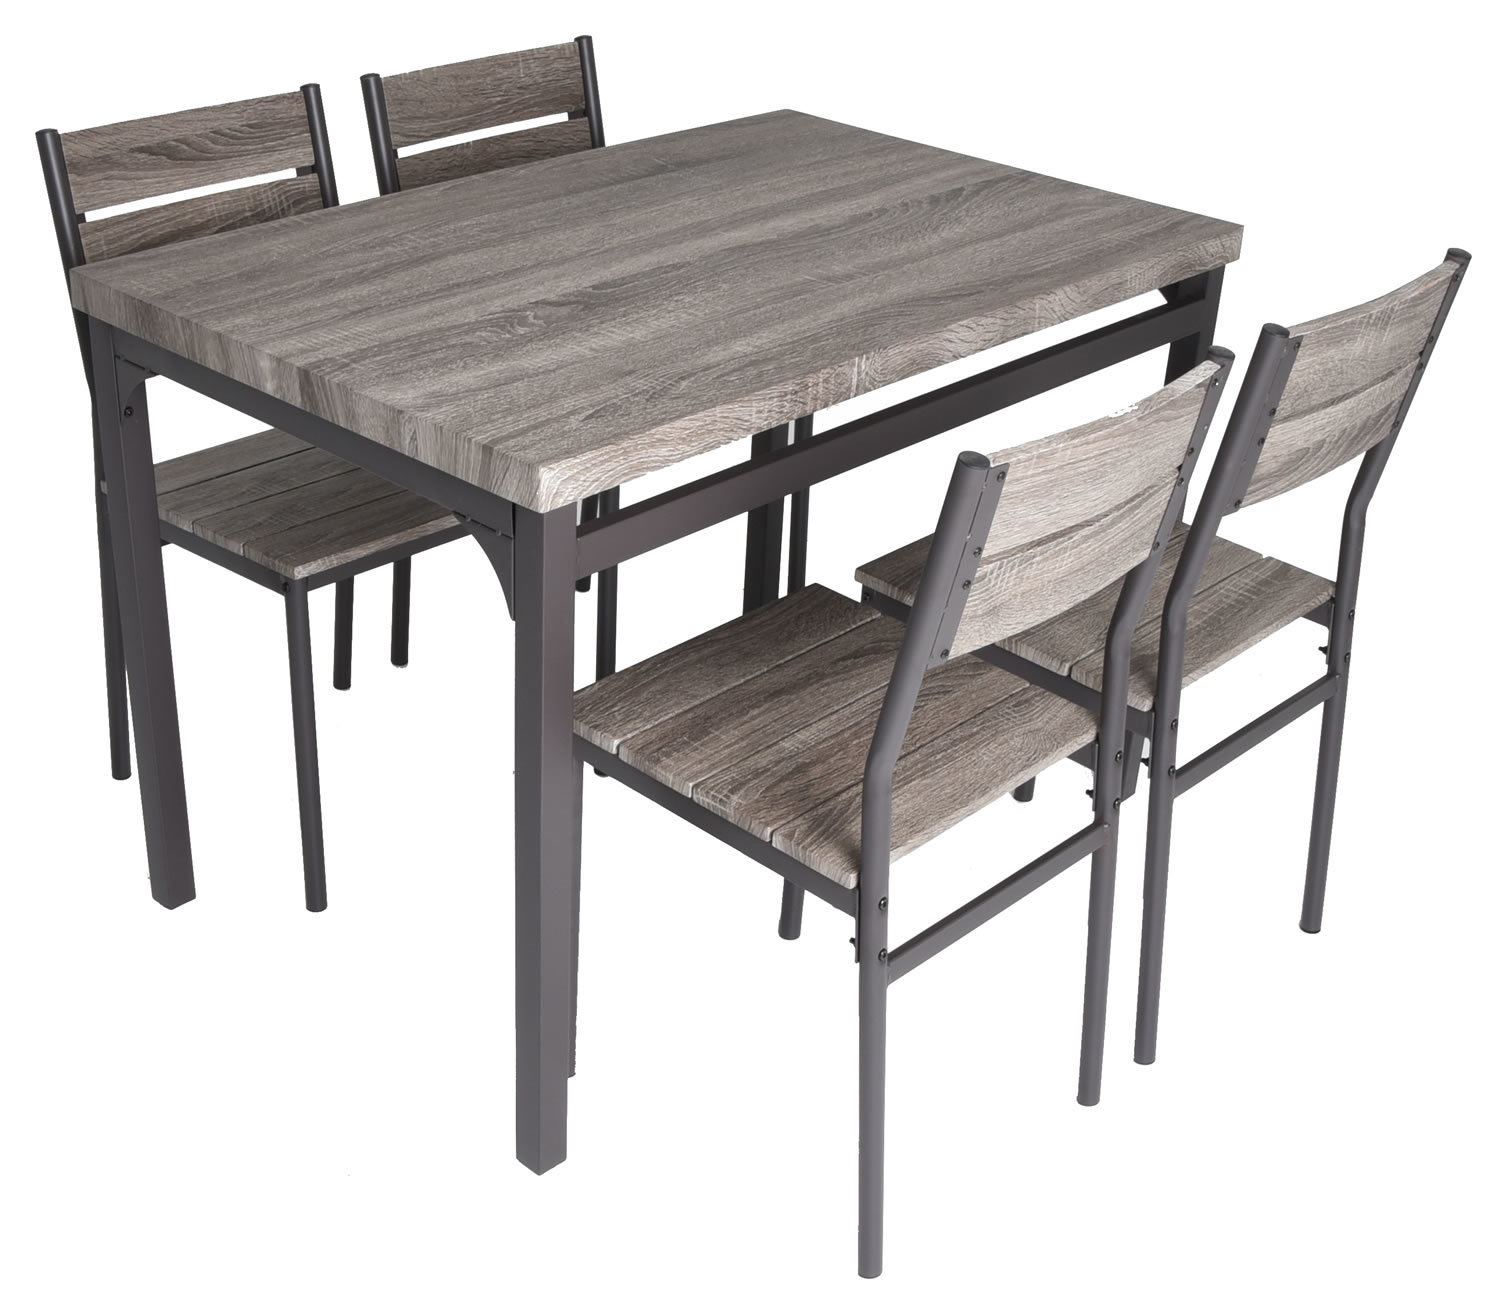 Best And Newest Gracie Oaks Emmeline 5 Piece Breakfast Nook Dining Set & Reviews Intended For 5 Piece Breakfast Nook Dining Sets (#4 of 20)